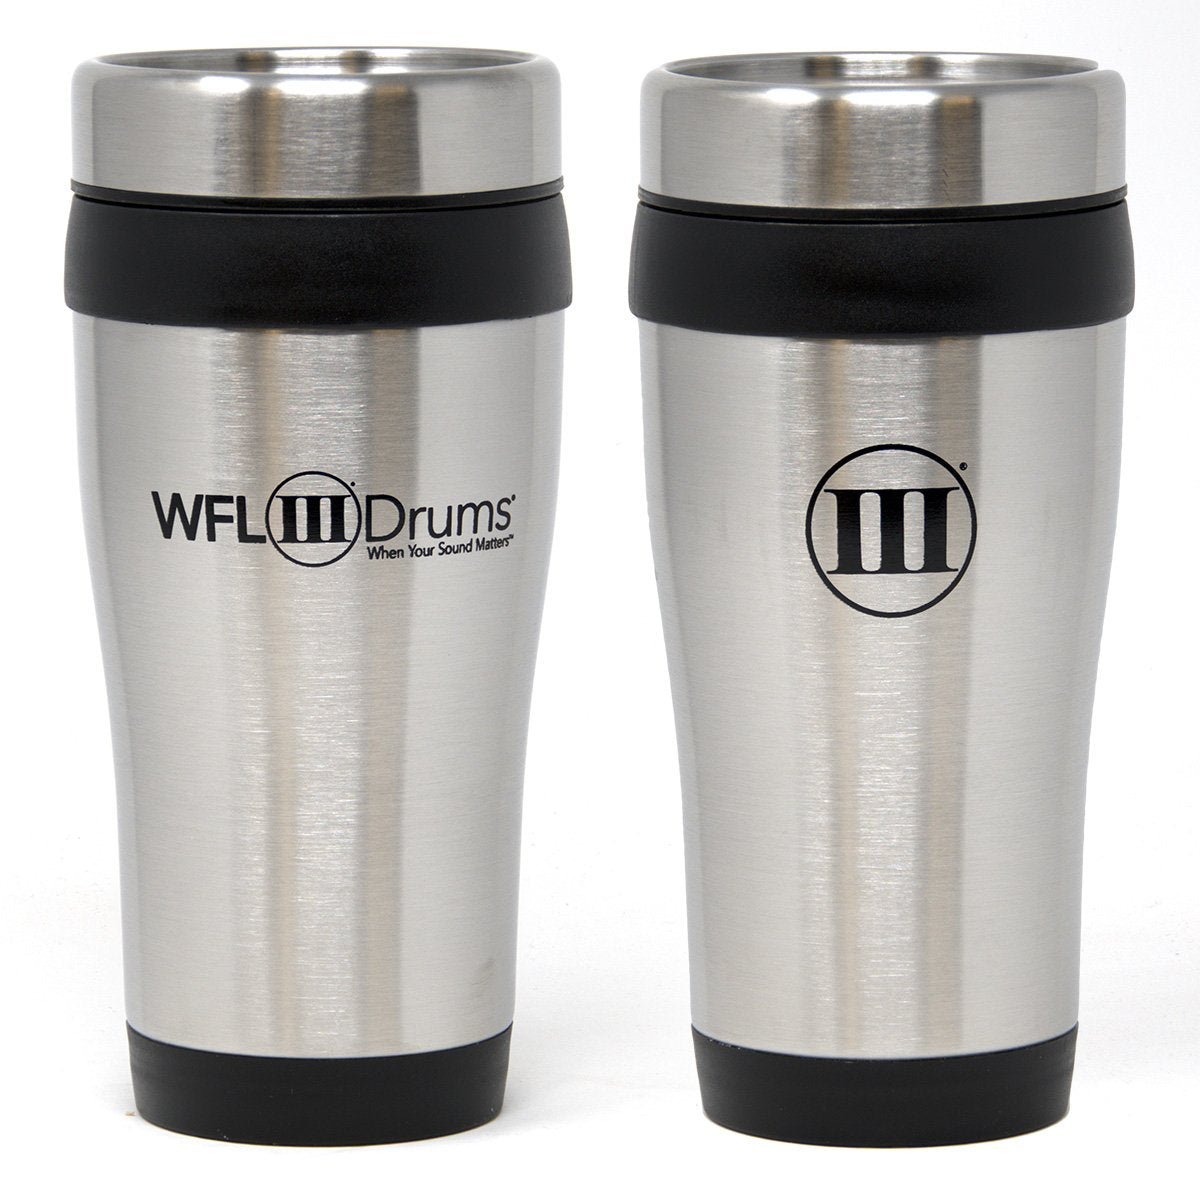 WFLIII Travel Tumbler - 16 oz.